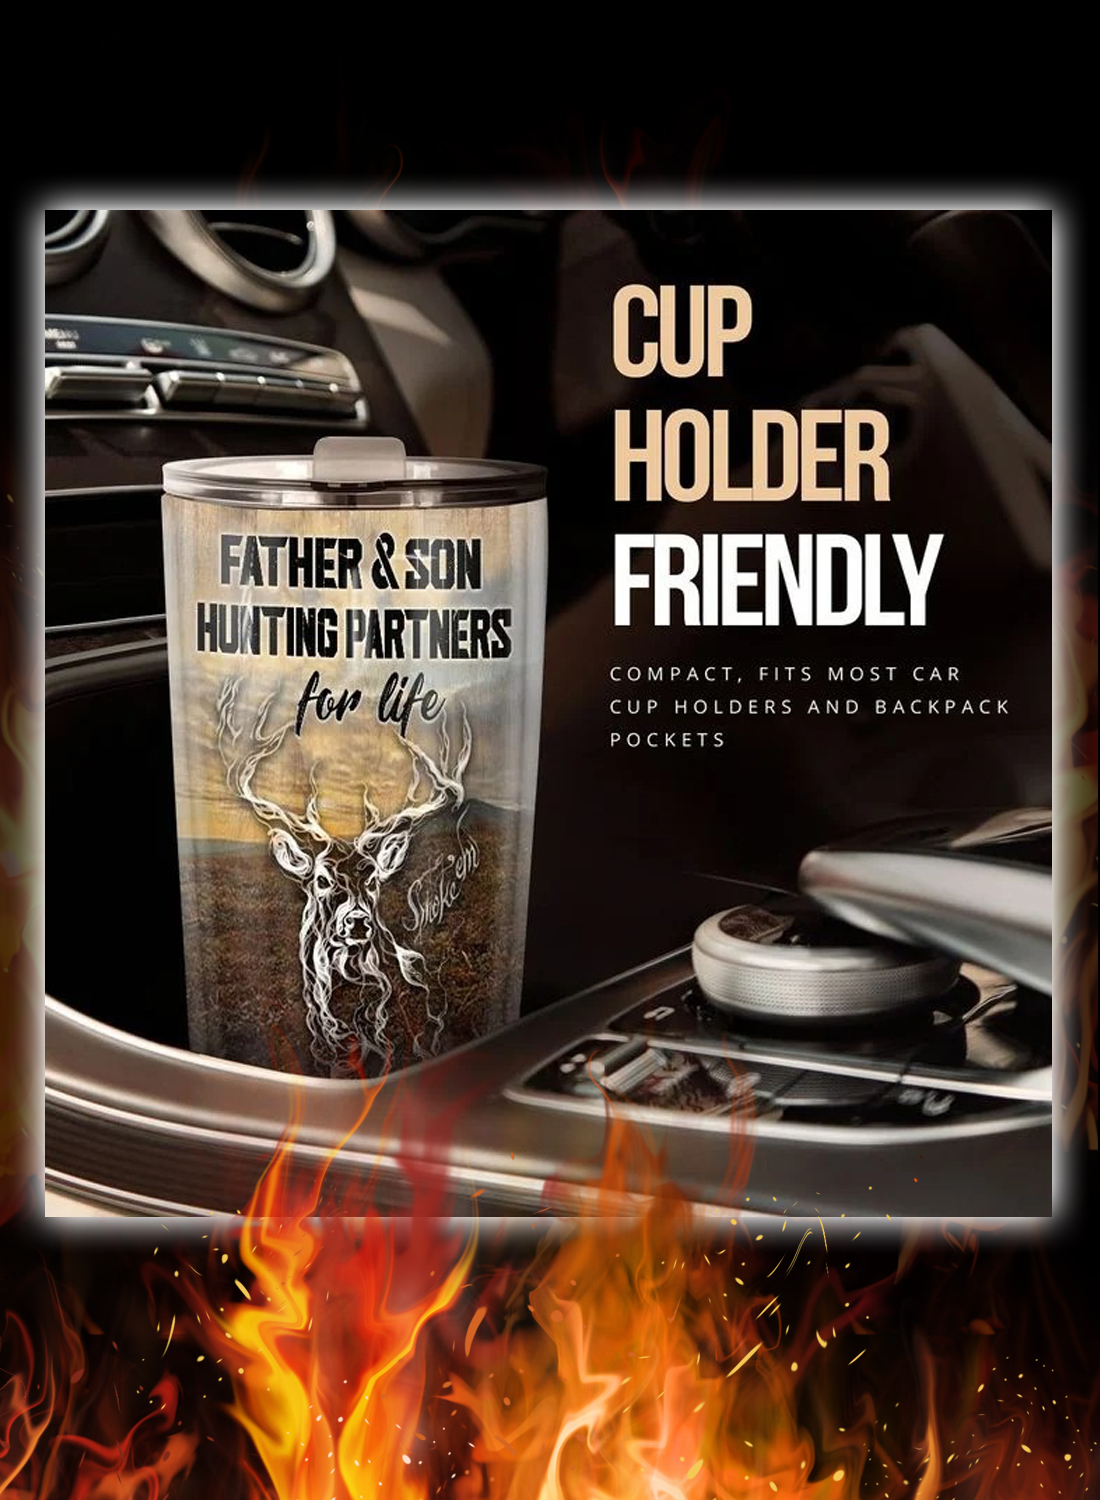 To my dad father and son hunting partners for life tumbler 2